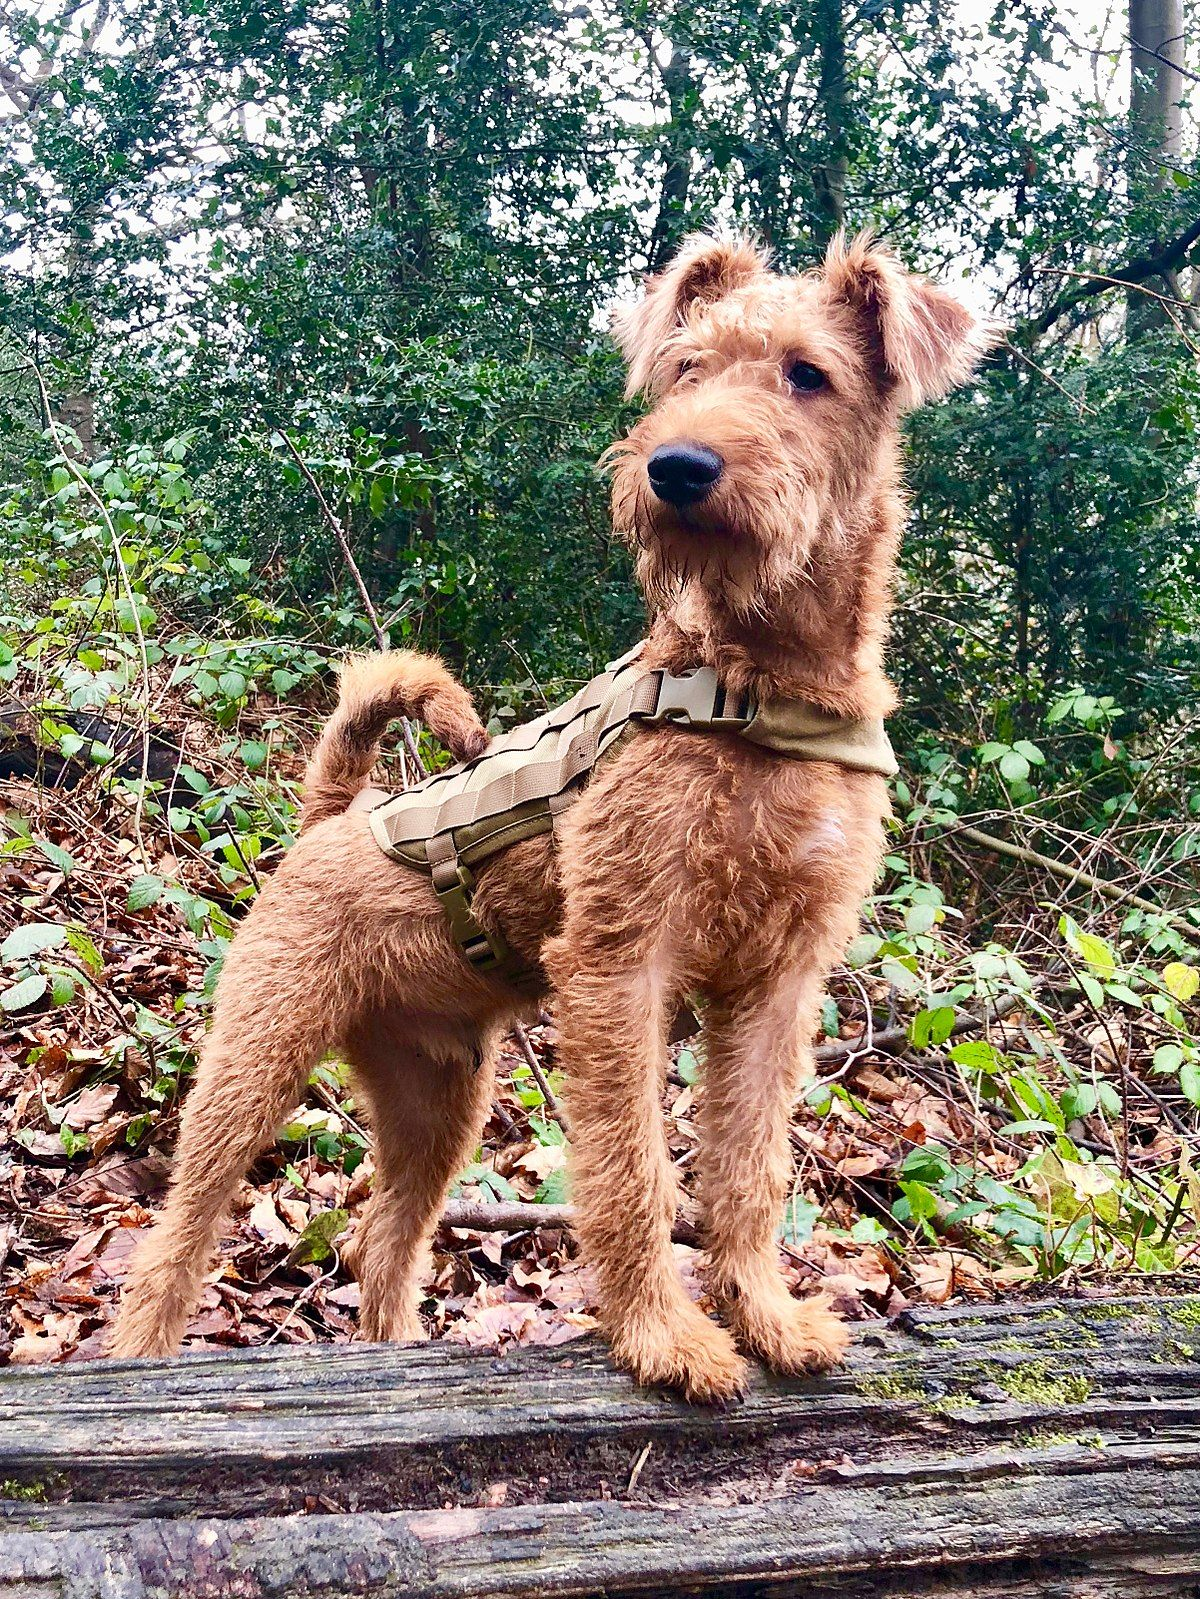 Irish Terrier Wikipedia Irish Dog Breeds Irish Dog Dog Breeds